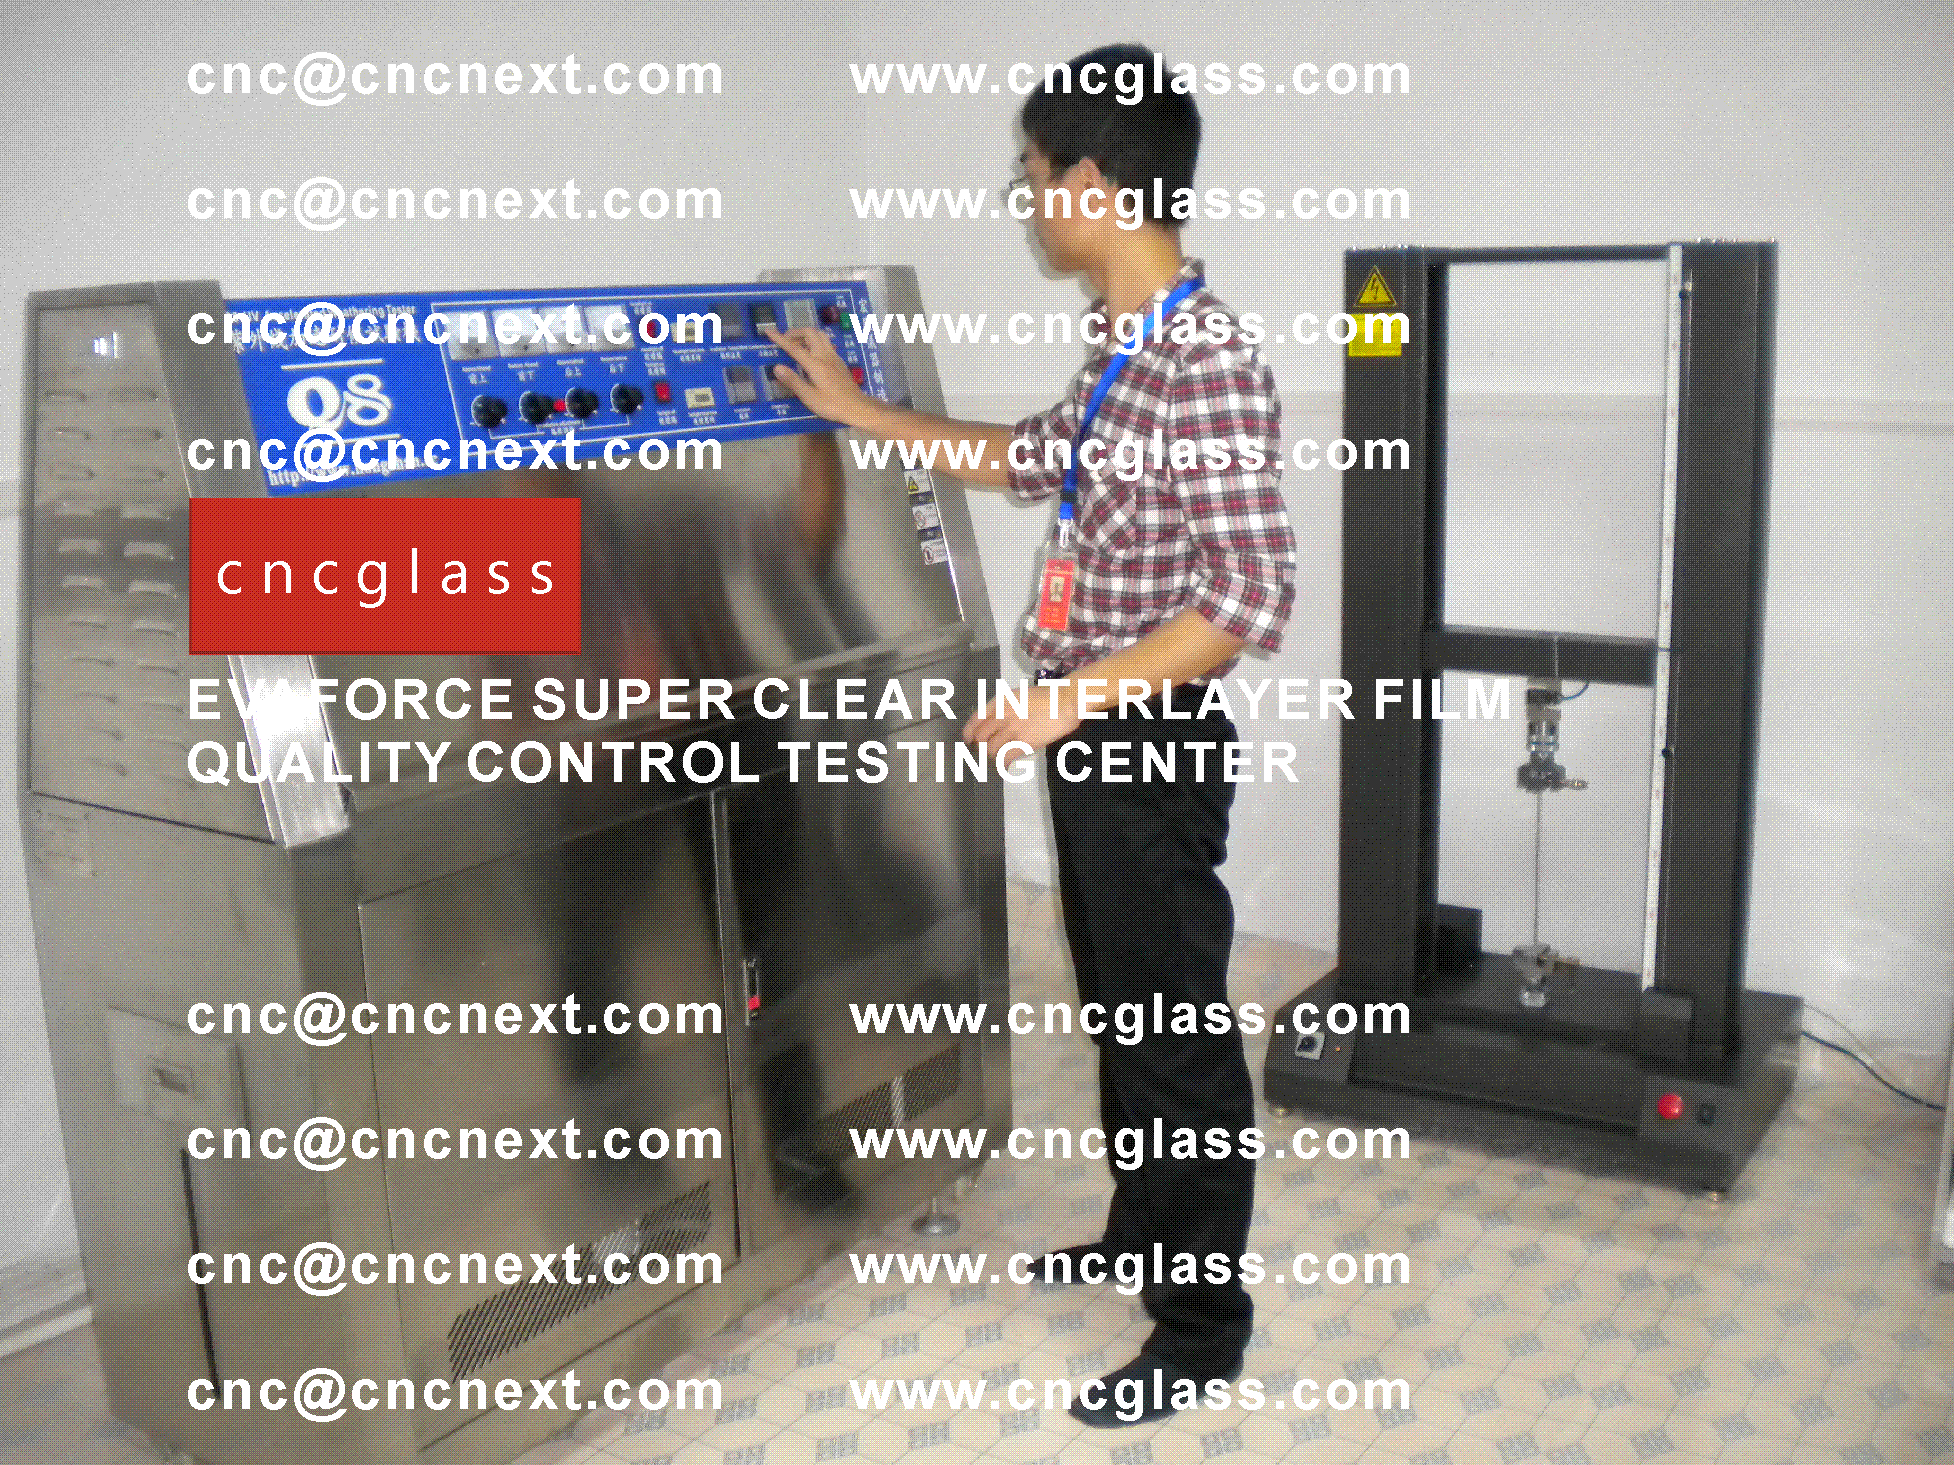 005 Quality Control of EVAFORCE SUPER CLEAR INTERLAYER FILM